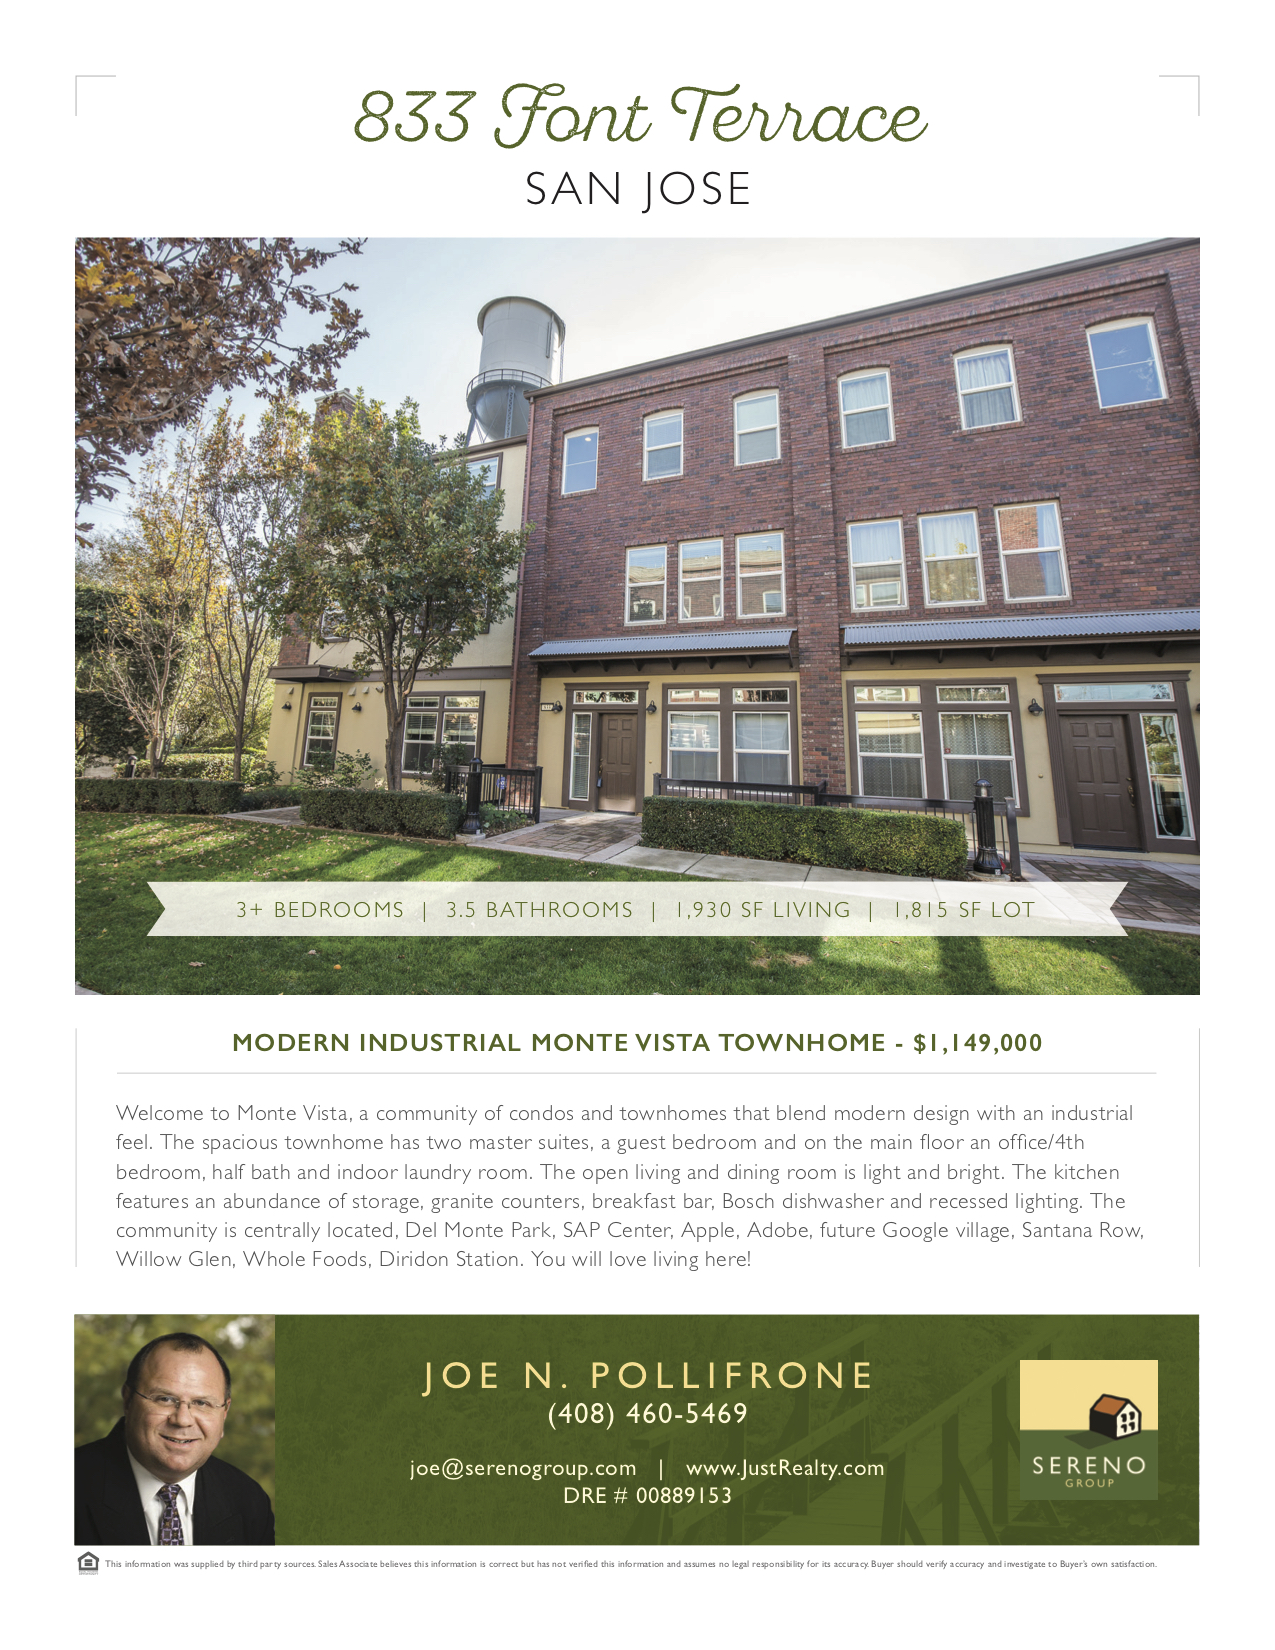 Open House at 833 Front Terrace this Sunday from 1pm - 4pm